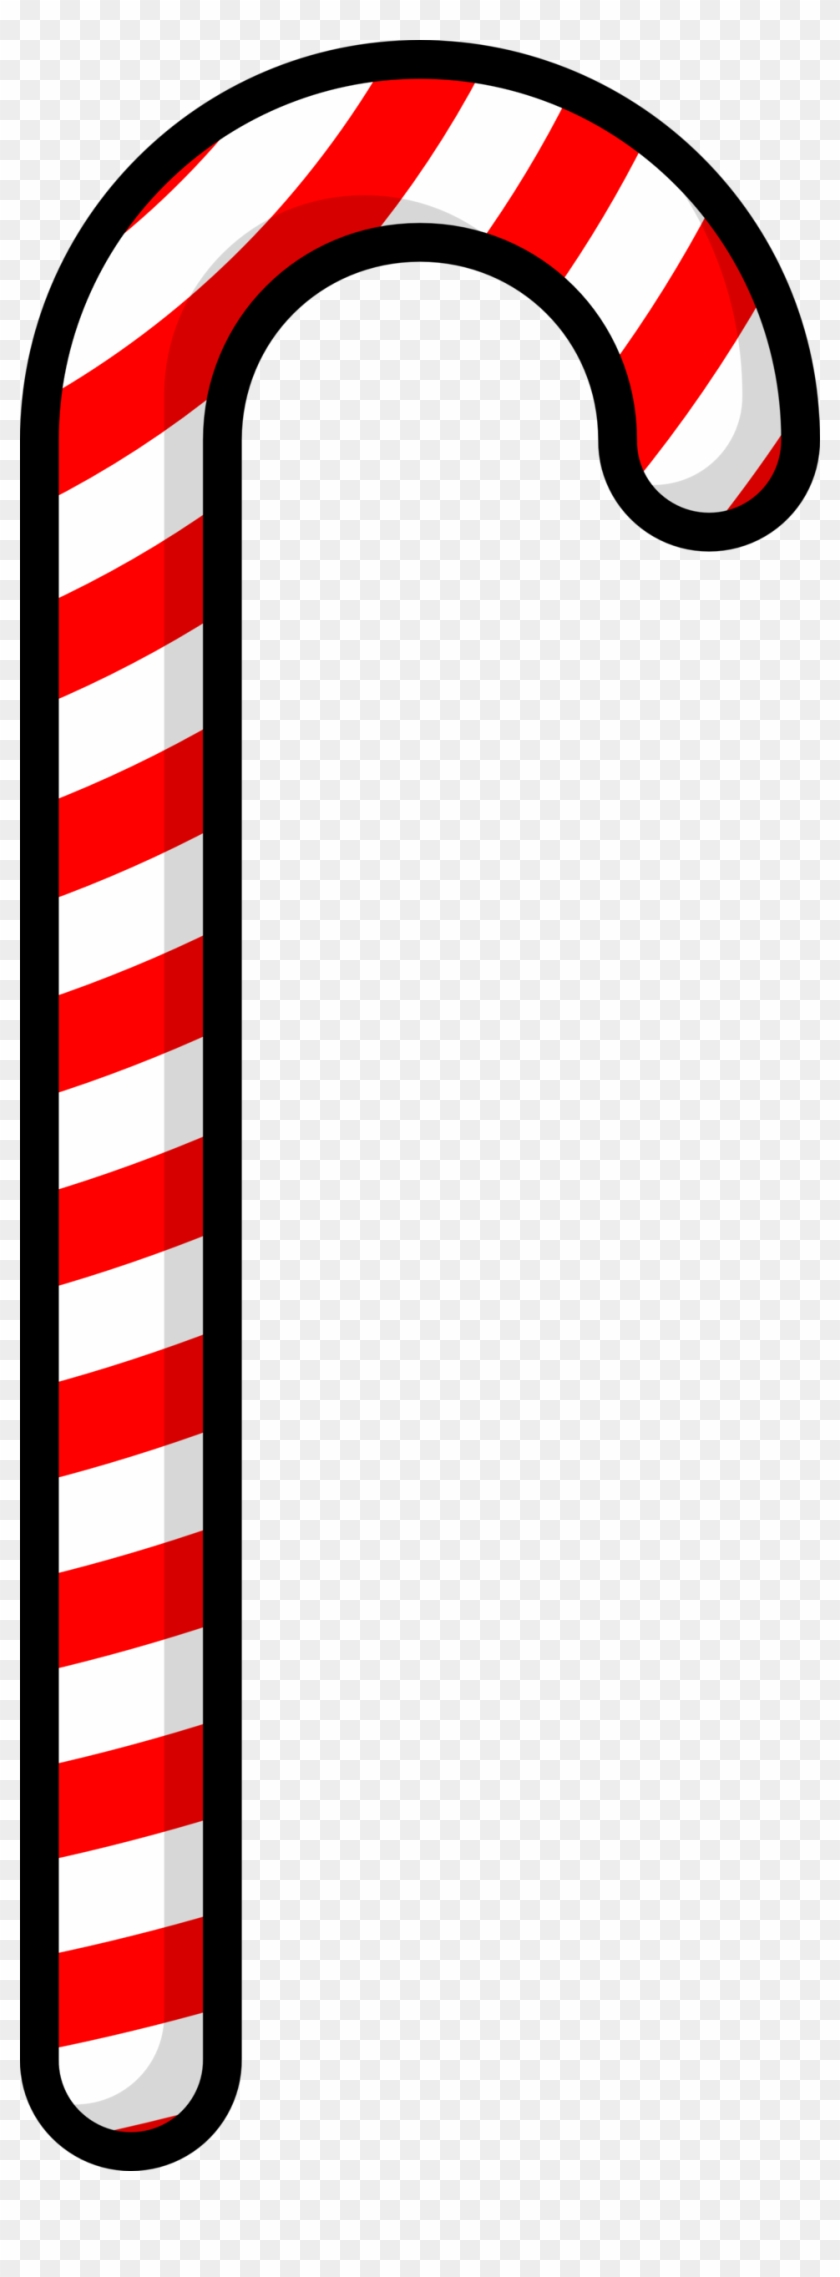 Inspiring Design Candy Cane Clipart Black And White - Candy Cane Clip Art #66689